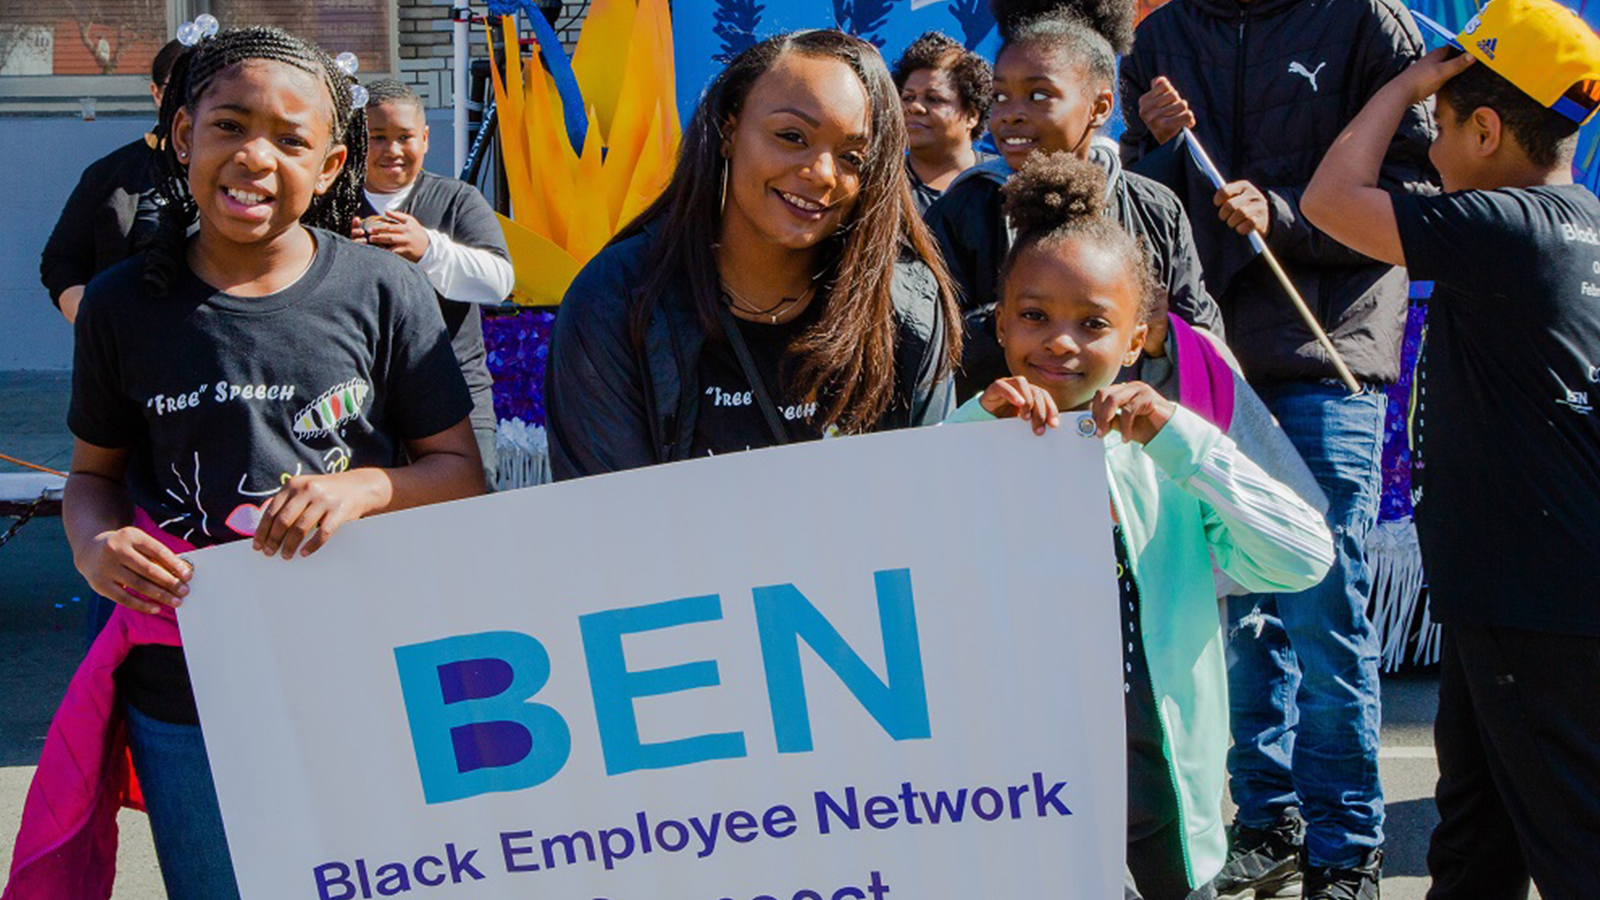 The #BEN Black Employee Network Signage Held By Youth Members